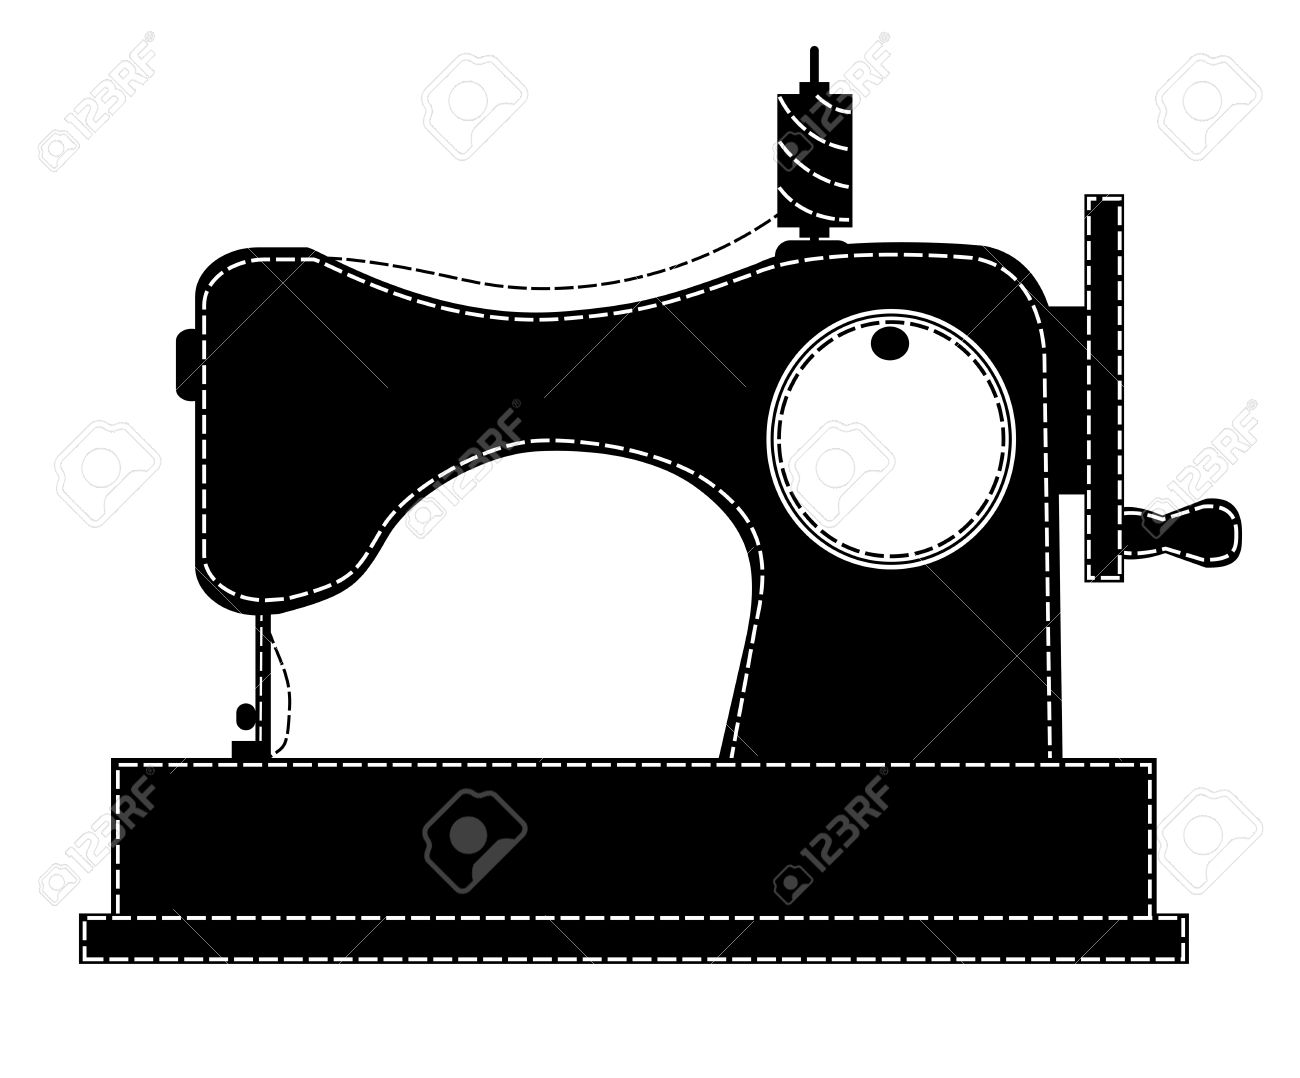 50,681 Sewing Stock Vector Illustration And Royalty Free Sewing Clipart.